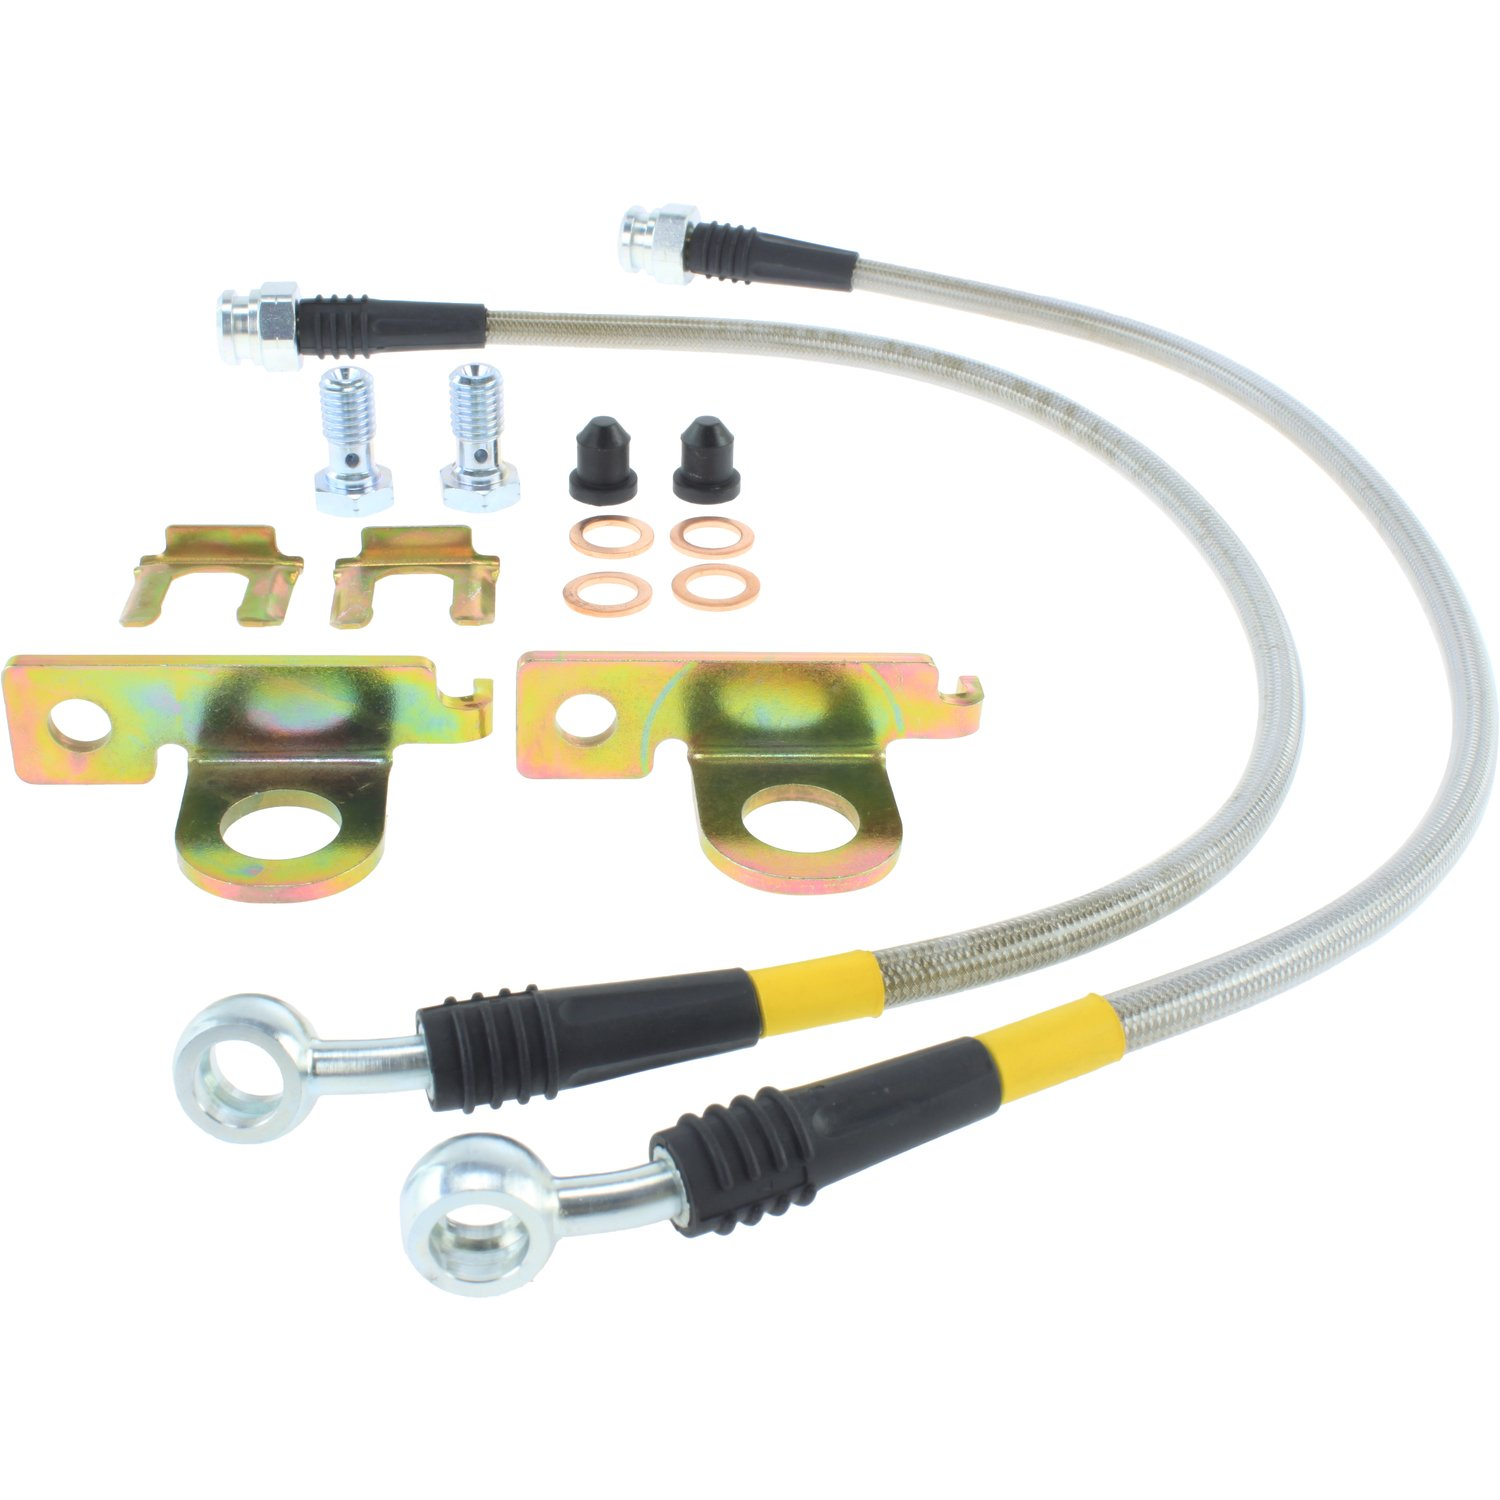 Centric 950.62503 Stainless Steel Brake Line Kit